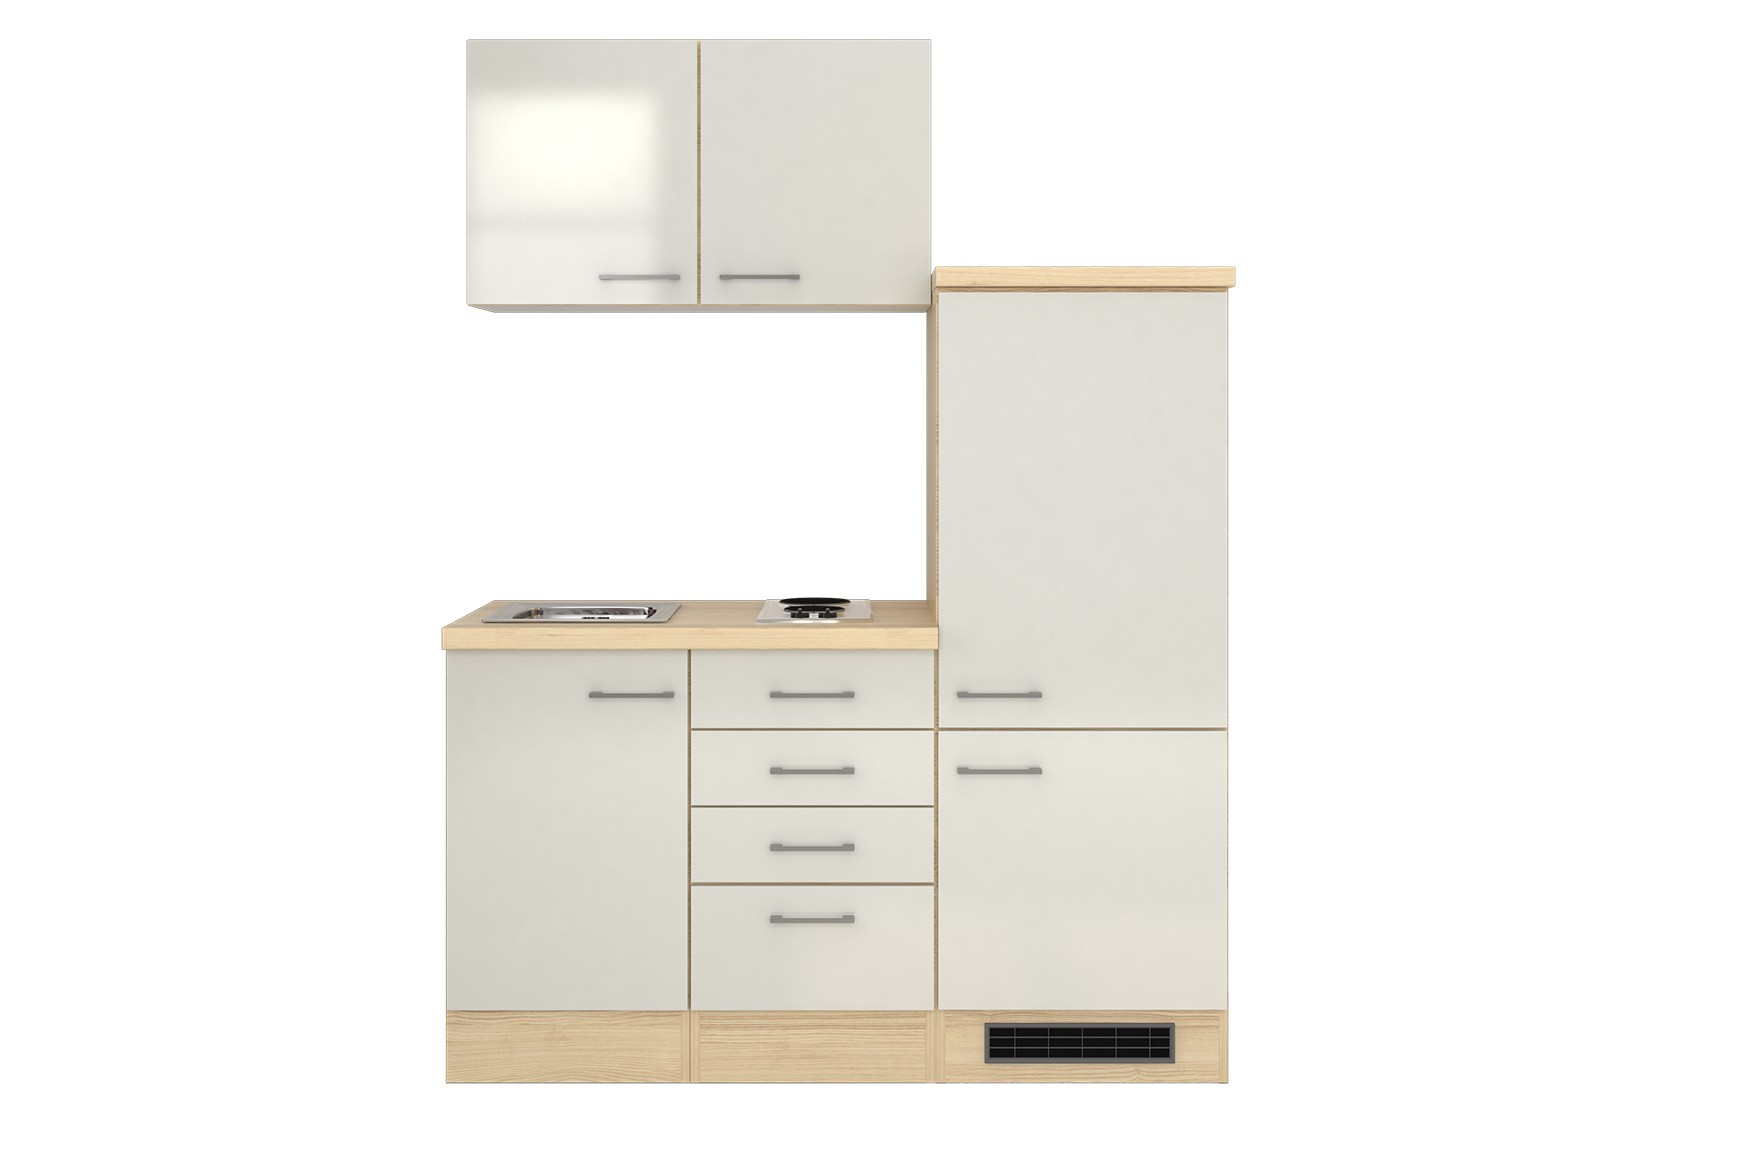 minik che florenz singlek che mit k hlschrank und kochfeld 160 cm weiss ebay. Black Bedroom Furniture Sets. Home Design Ideas